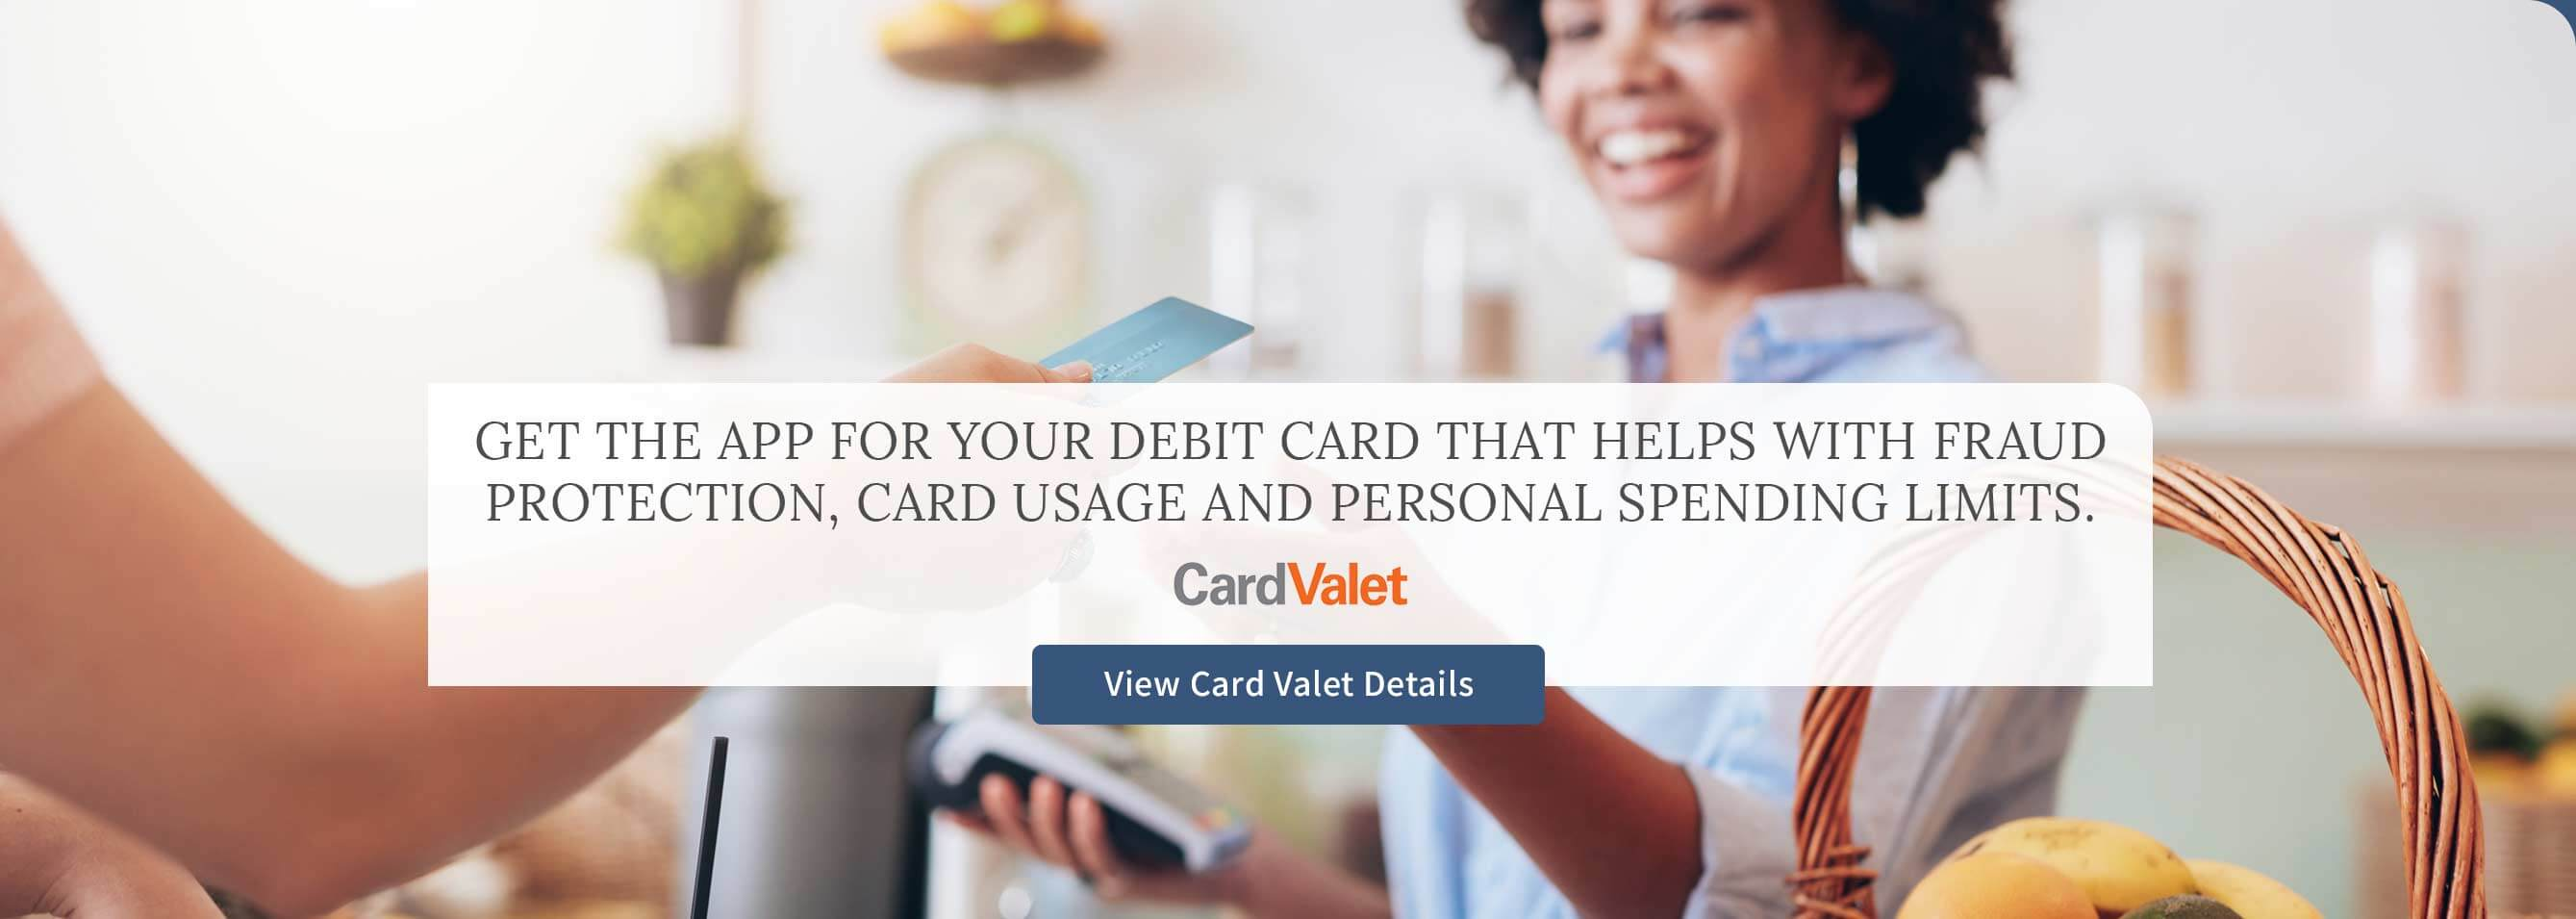 Get the app for your debit card that helps with fraud protection, card useage, and personal spending limits. View CardValet details.